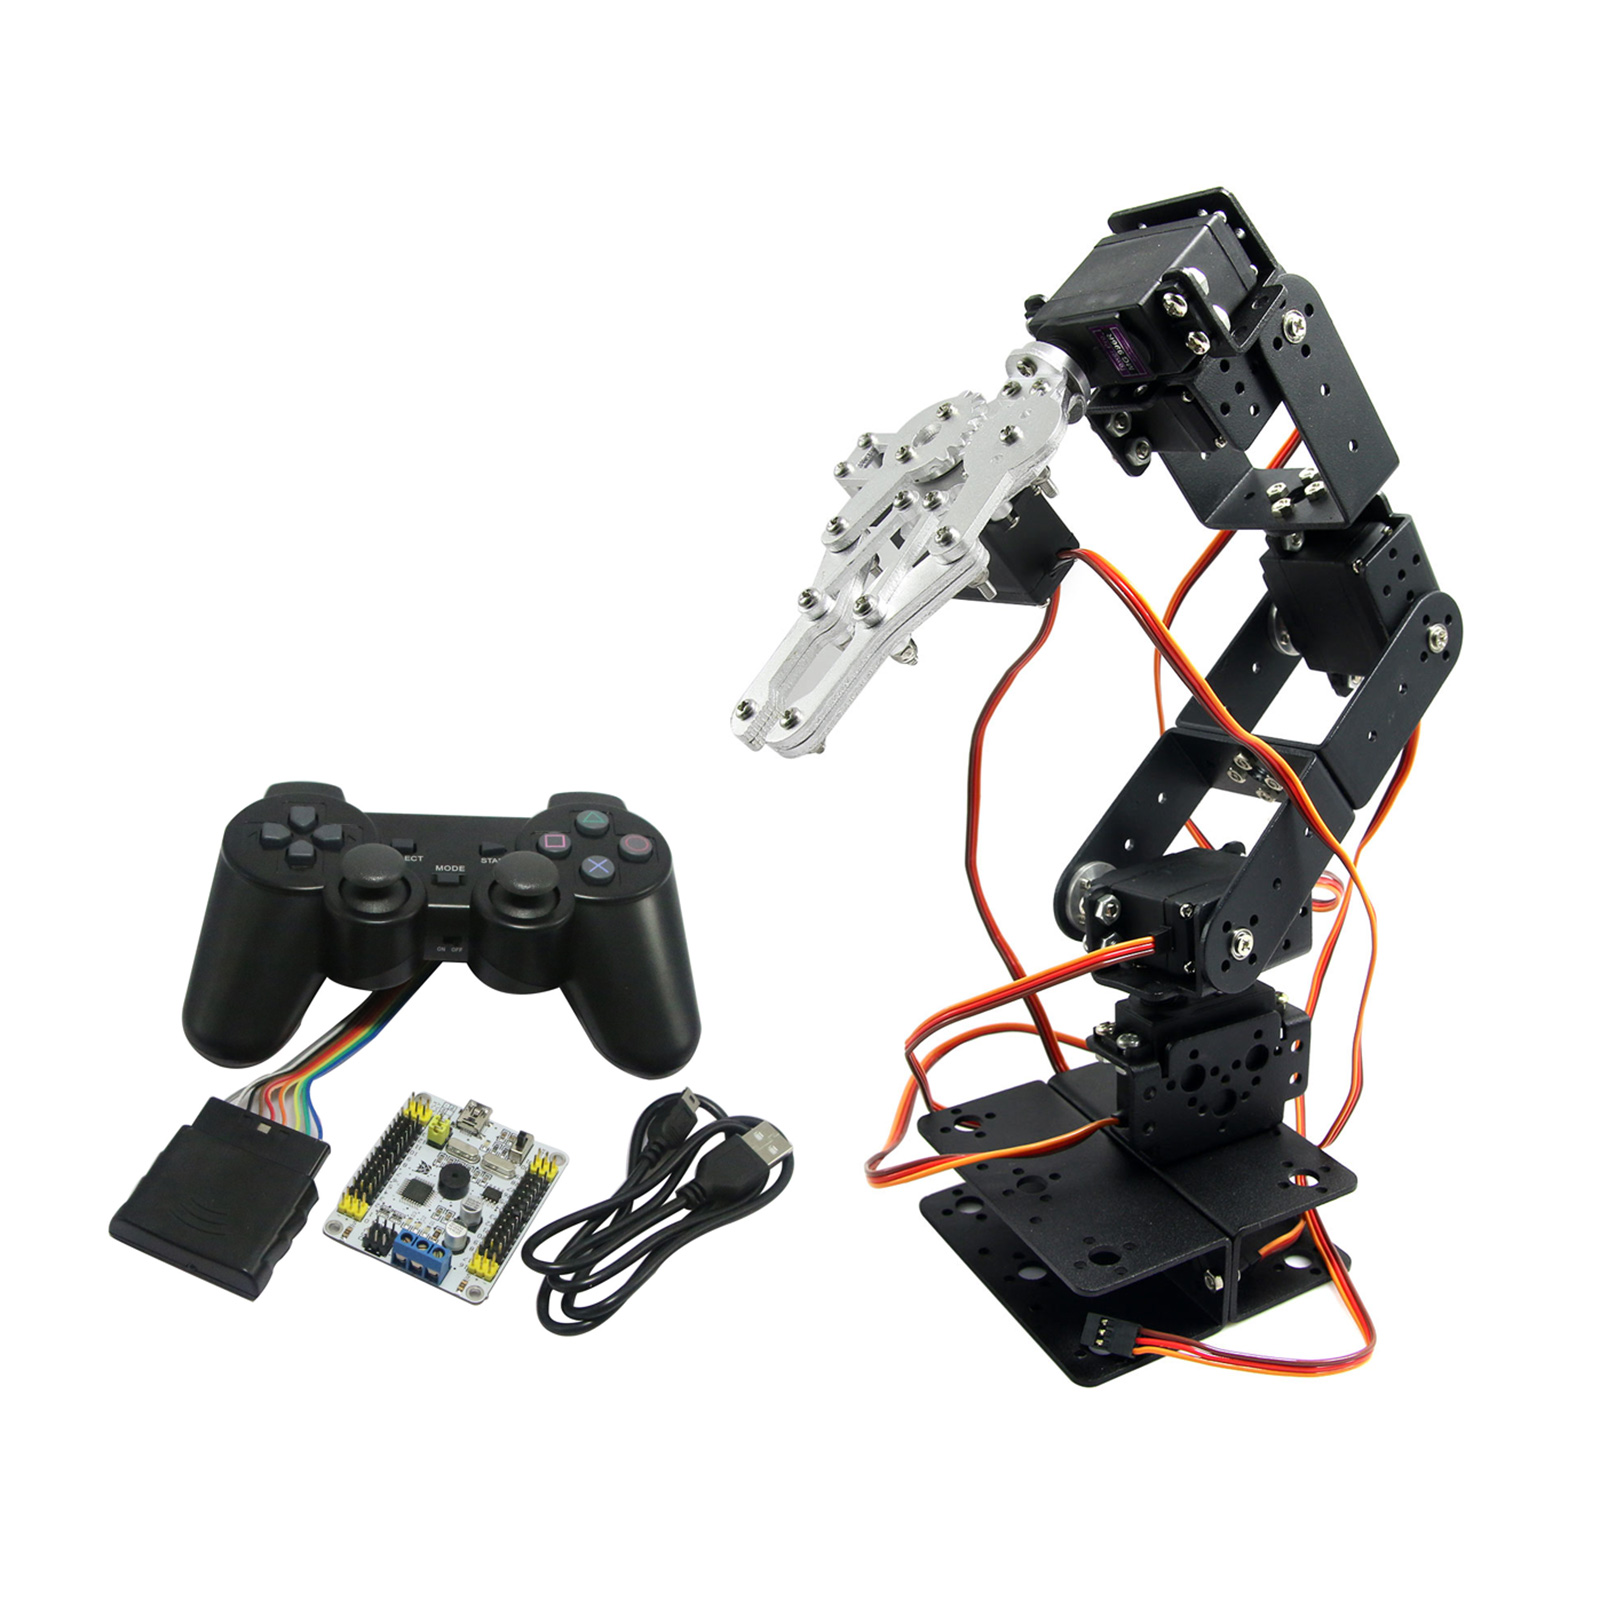 Assembled Robot 6 DOF Arm Mechanical Robotic Clamp Claw with LD-1501 Servos & Controller for Arduino mini 400w rgb 3in1 fog machine remote control pump dj disco smoke machine for party wedding christmas stage fogger machine